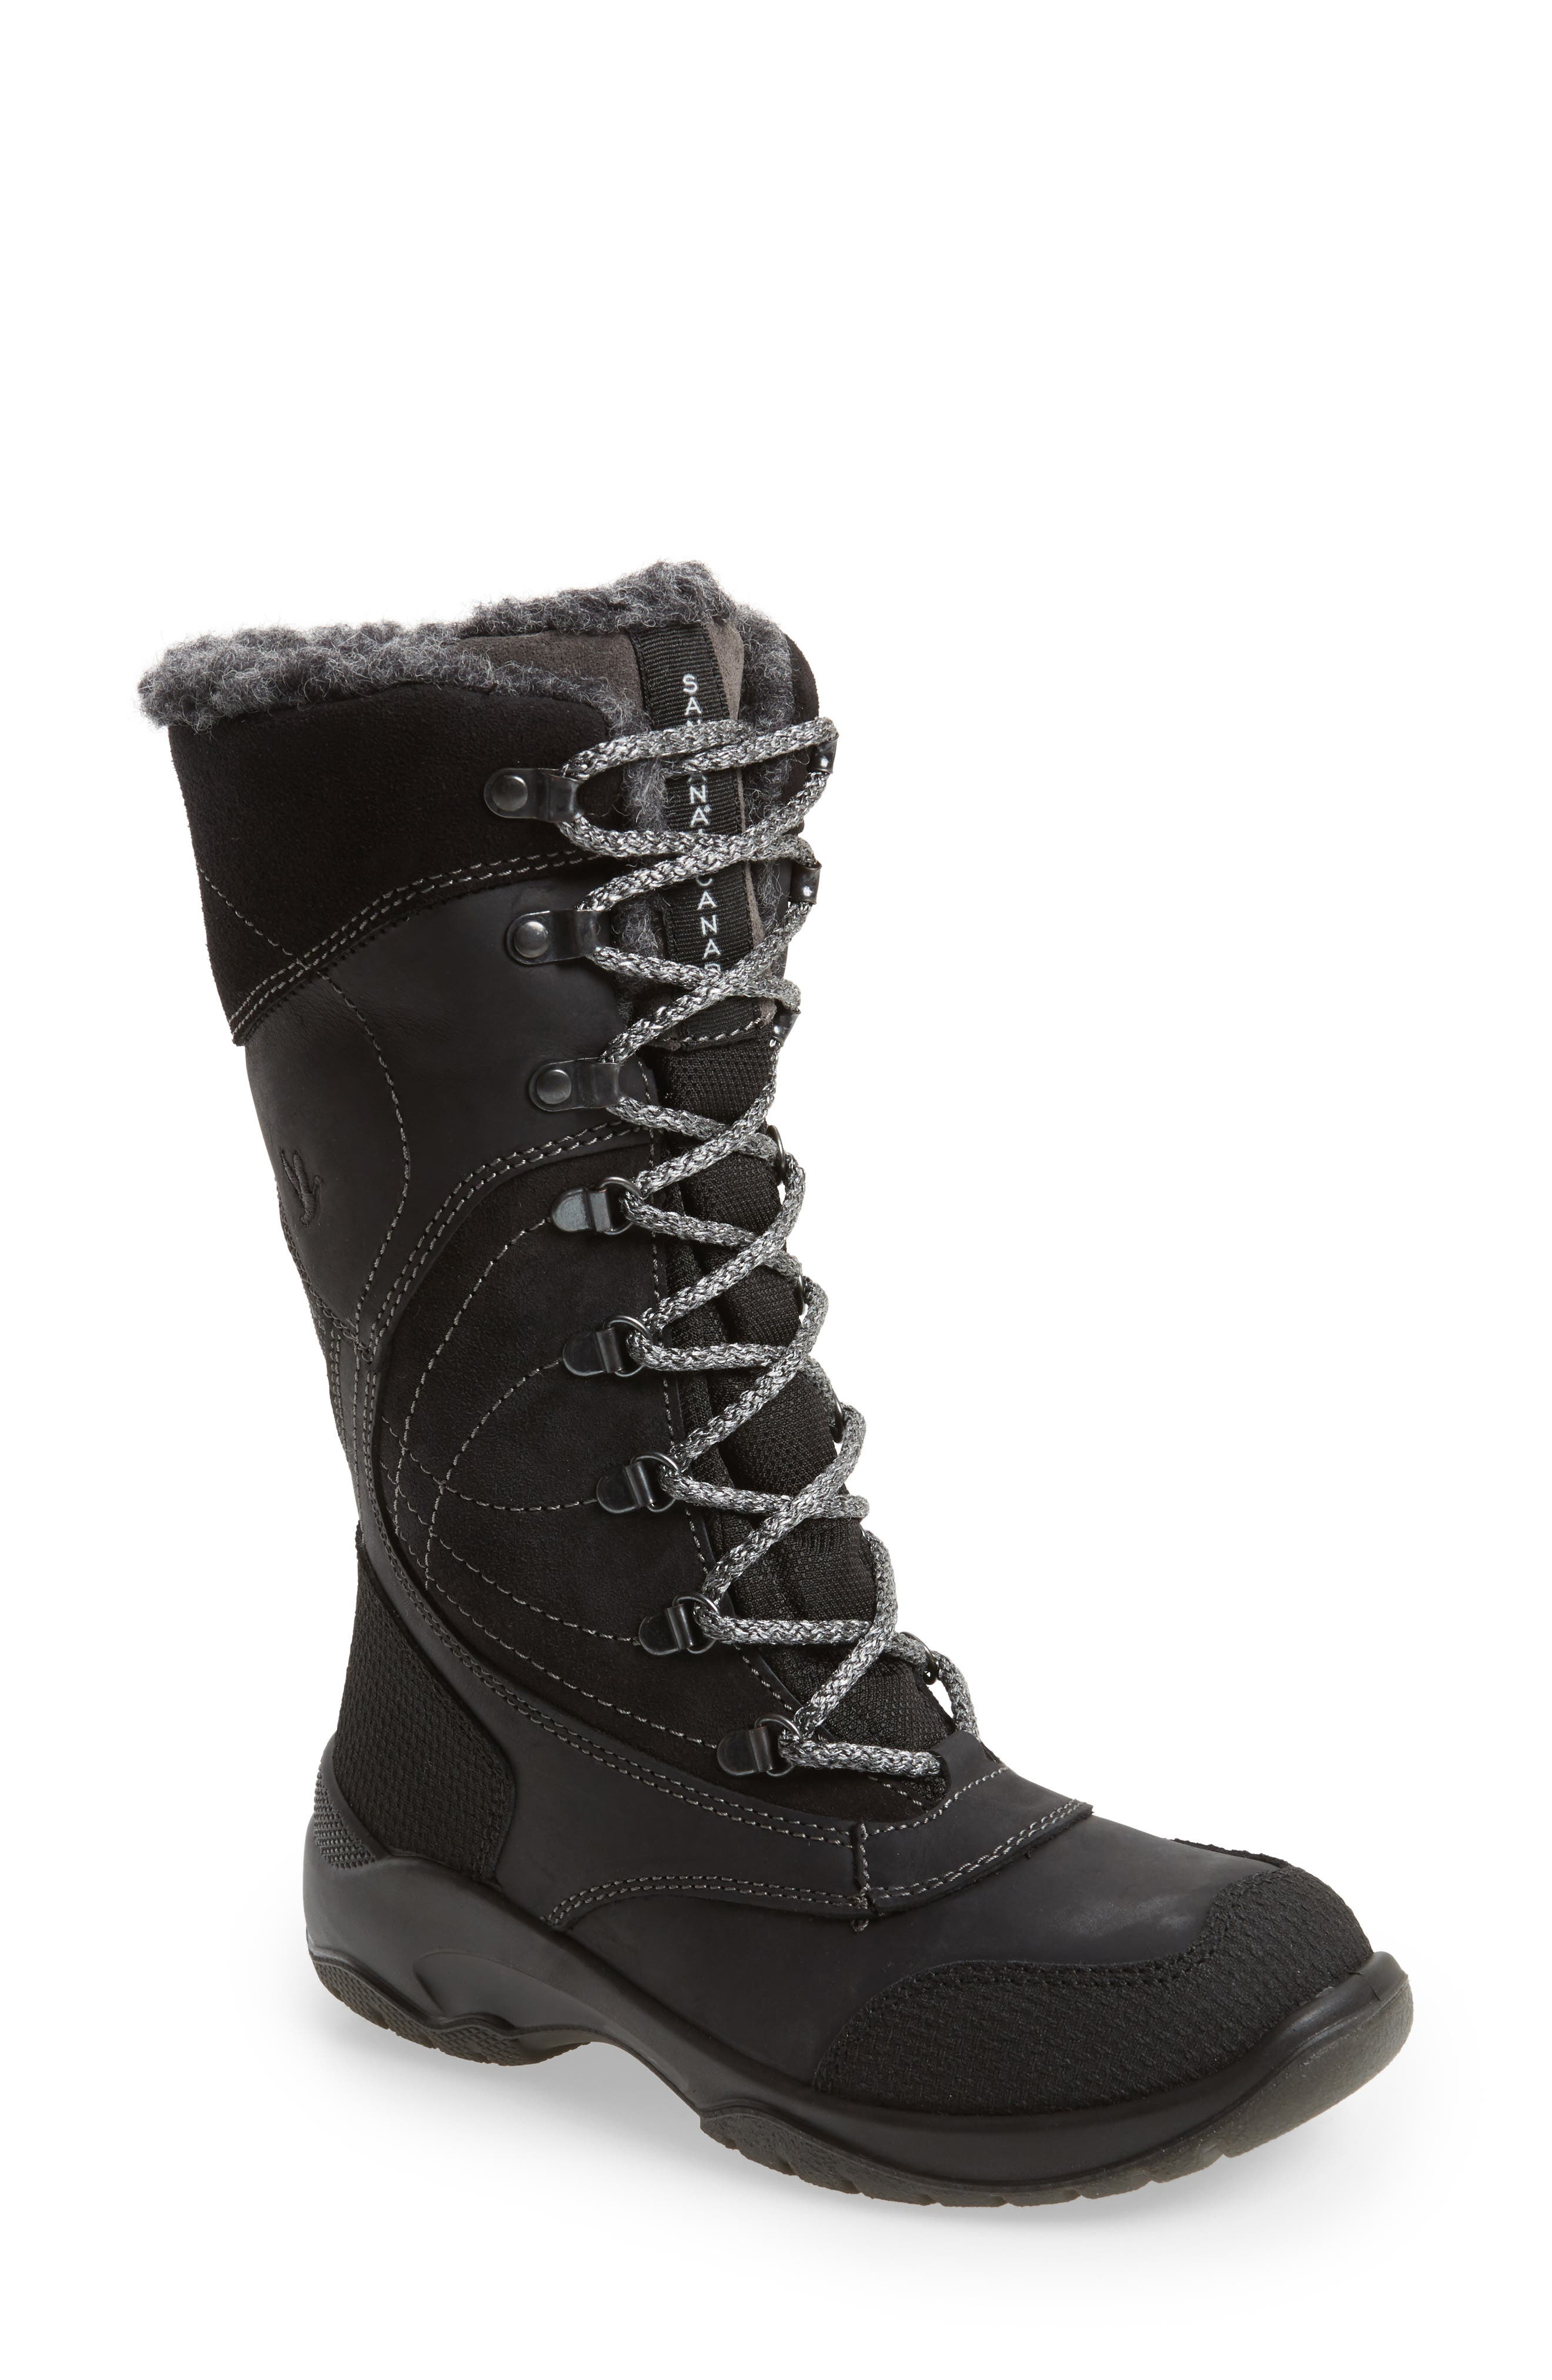 Topspeed Faux Fur Lined Waterproof Boot,                         Main,                         color, Black Leather